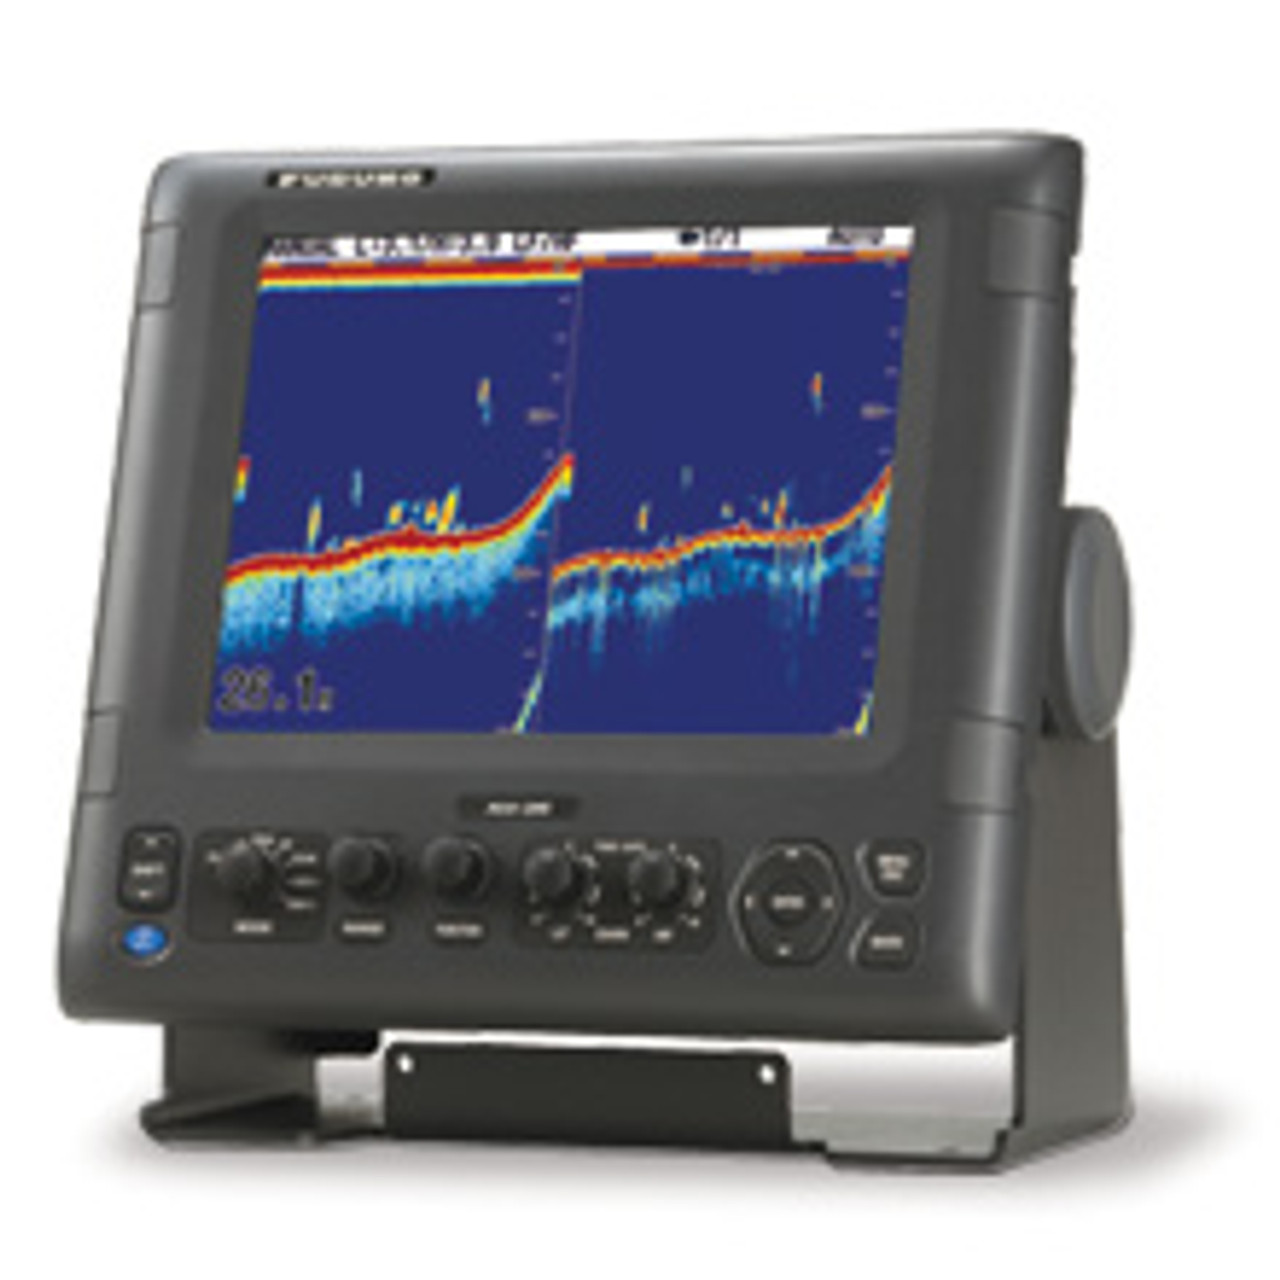 Furuno FCV-295 Echo Sounder Digital Color Sounder